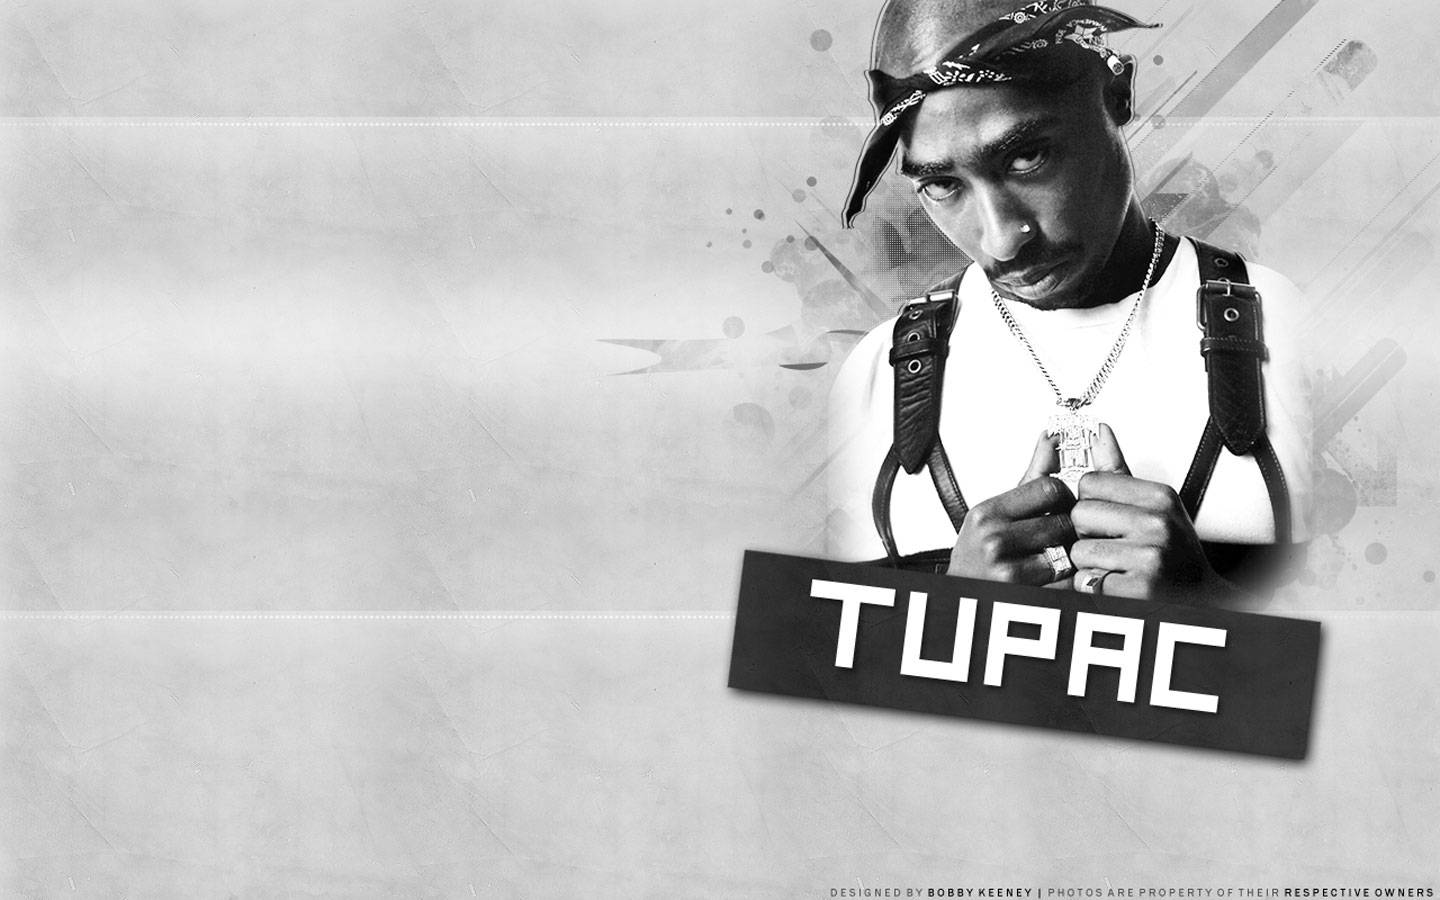 2Pac Shakur Prison Wallpaper   2pac Wallpaper 1440x900